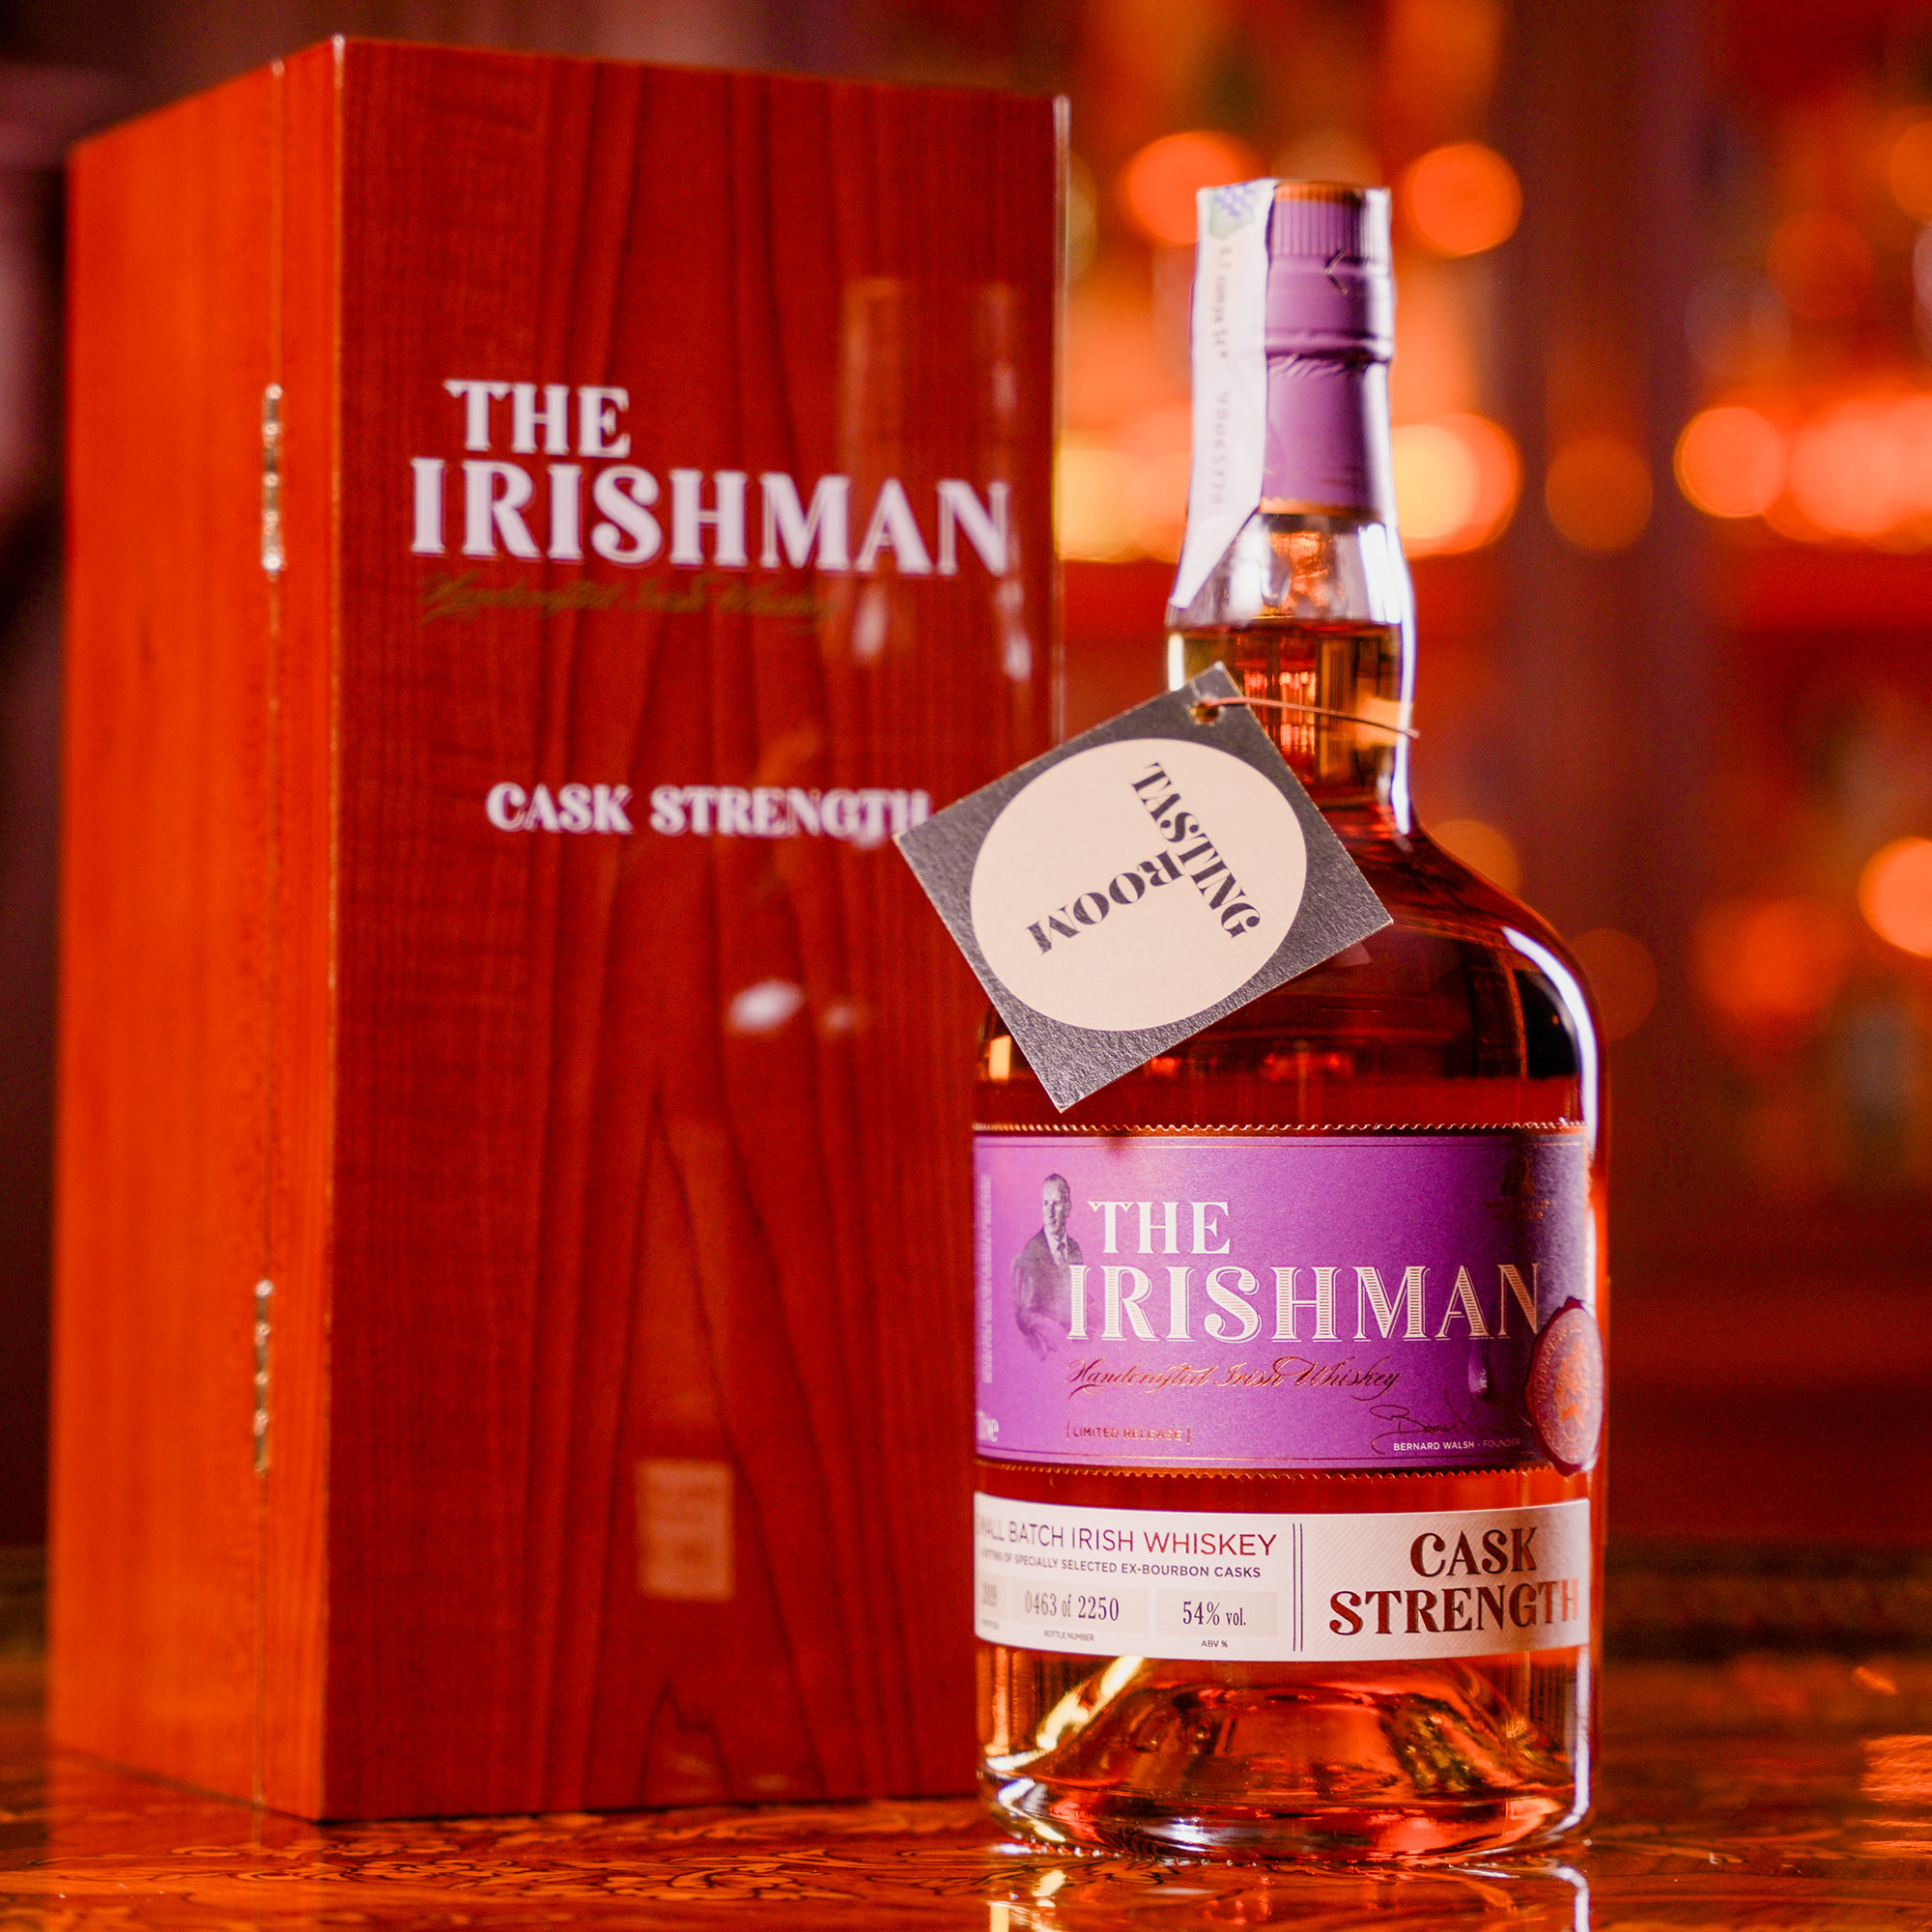 The Irishman Cask Strength /Дъ Айришман или Дъ Айришмен, Айришман или Айришмен Каск Стренгт